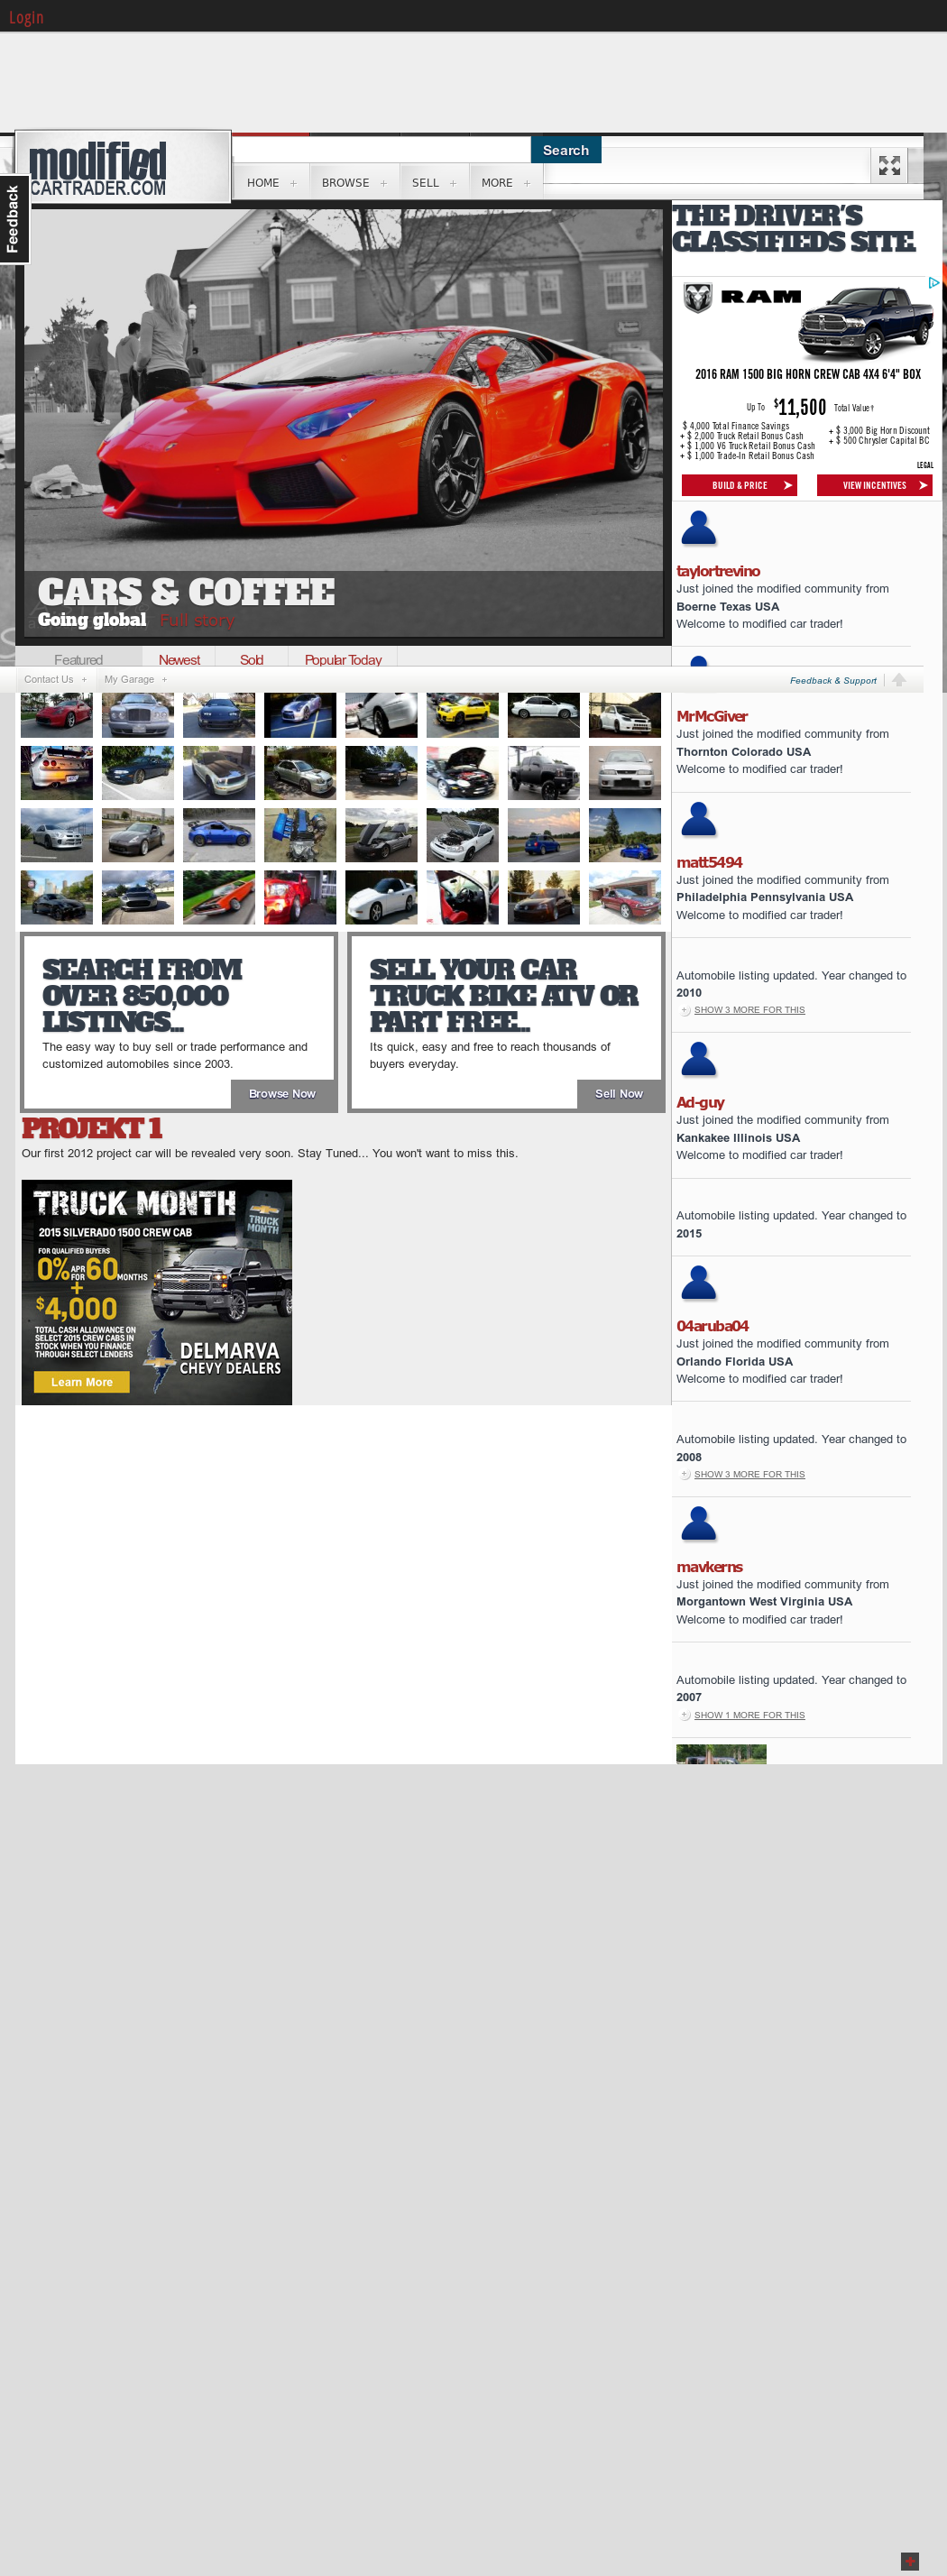 Modified Car Trader >> Modifiedcartrader Competitors Revenue And Employees Owler